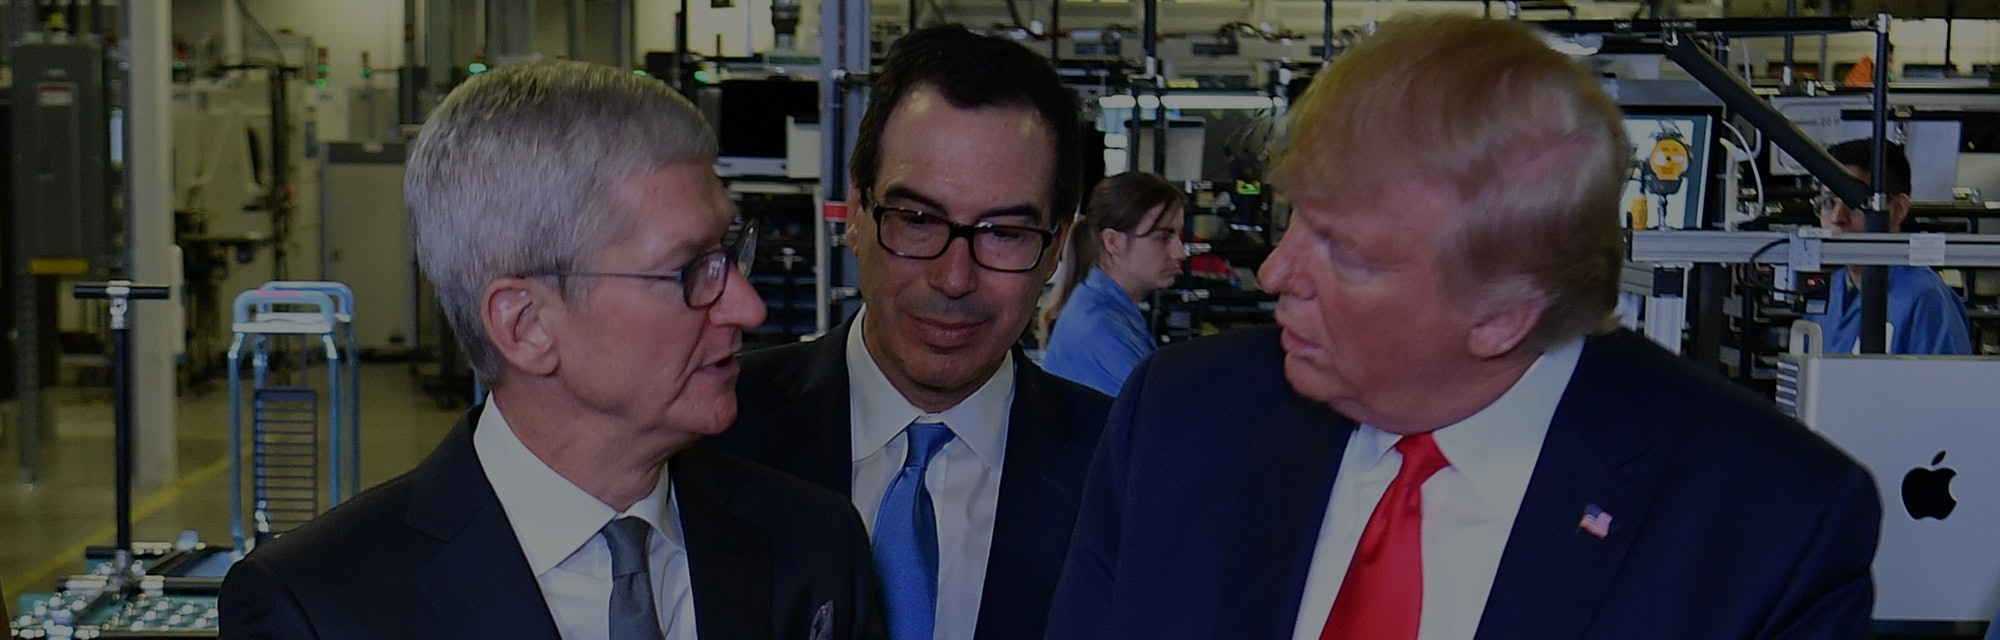 Apple CEO Tim Cook, Treasury Secretary Steve Mnuchin, President Trump meet at a manufacturing facility in Austin, Texas.